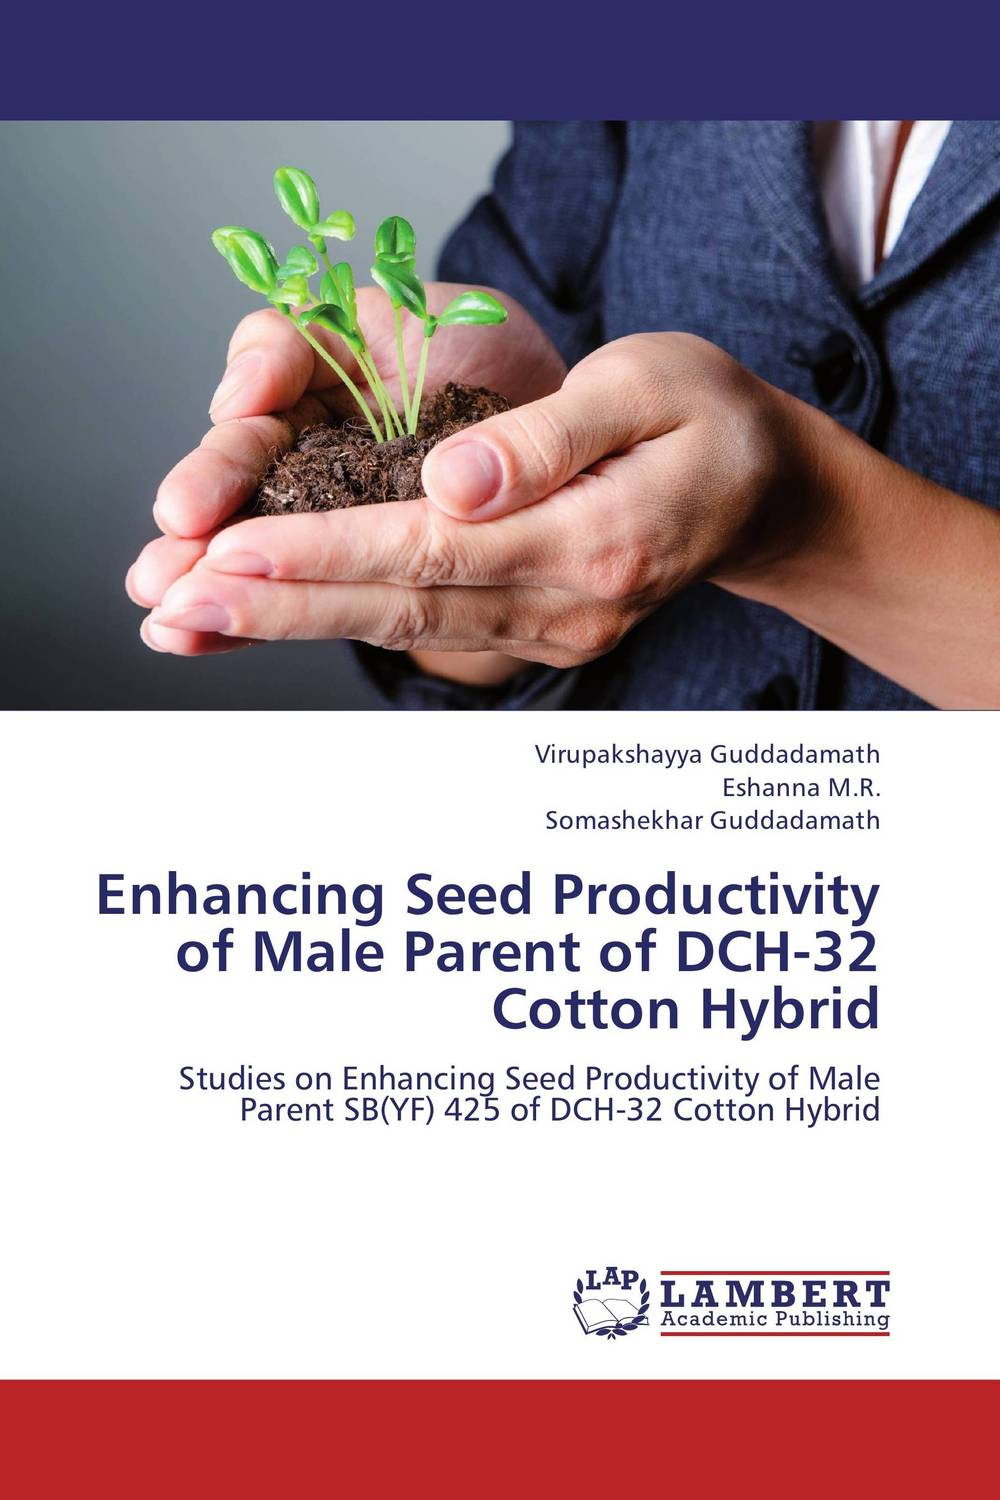 Enhancing Seed Productivity of Male Parent of DCH-32 Cotton Hybrid father's role in enhancing children's development